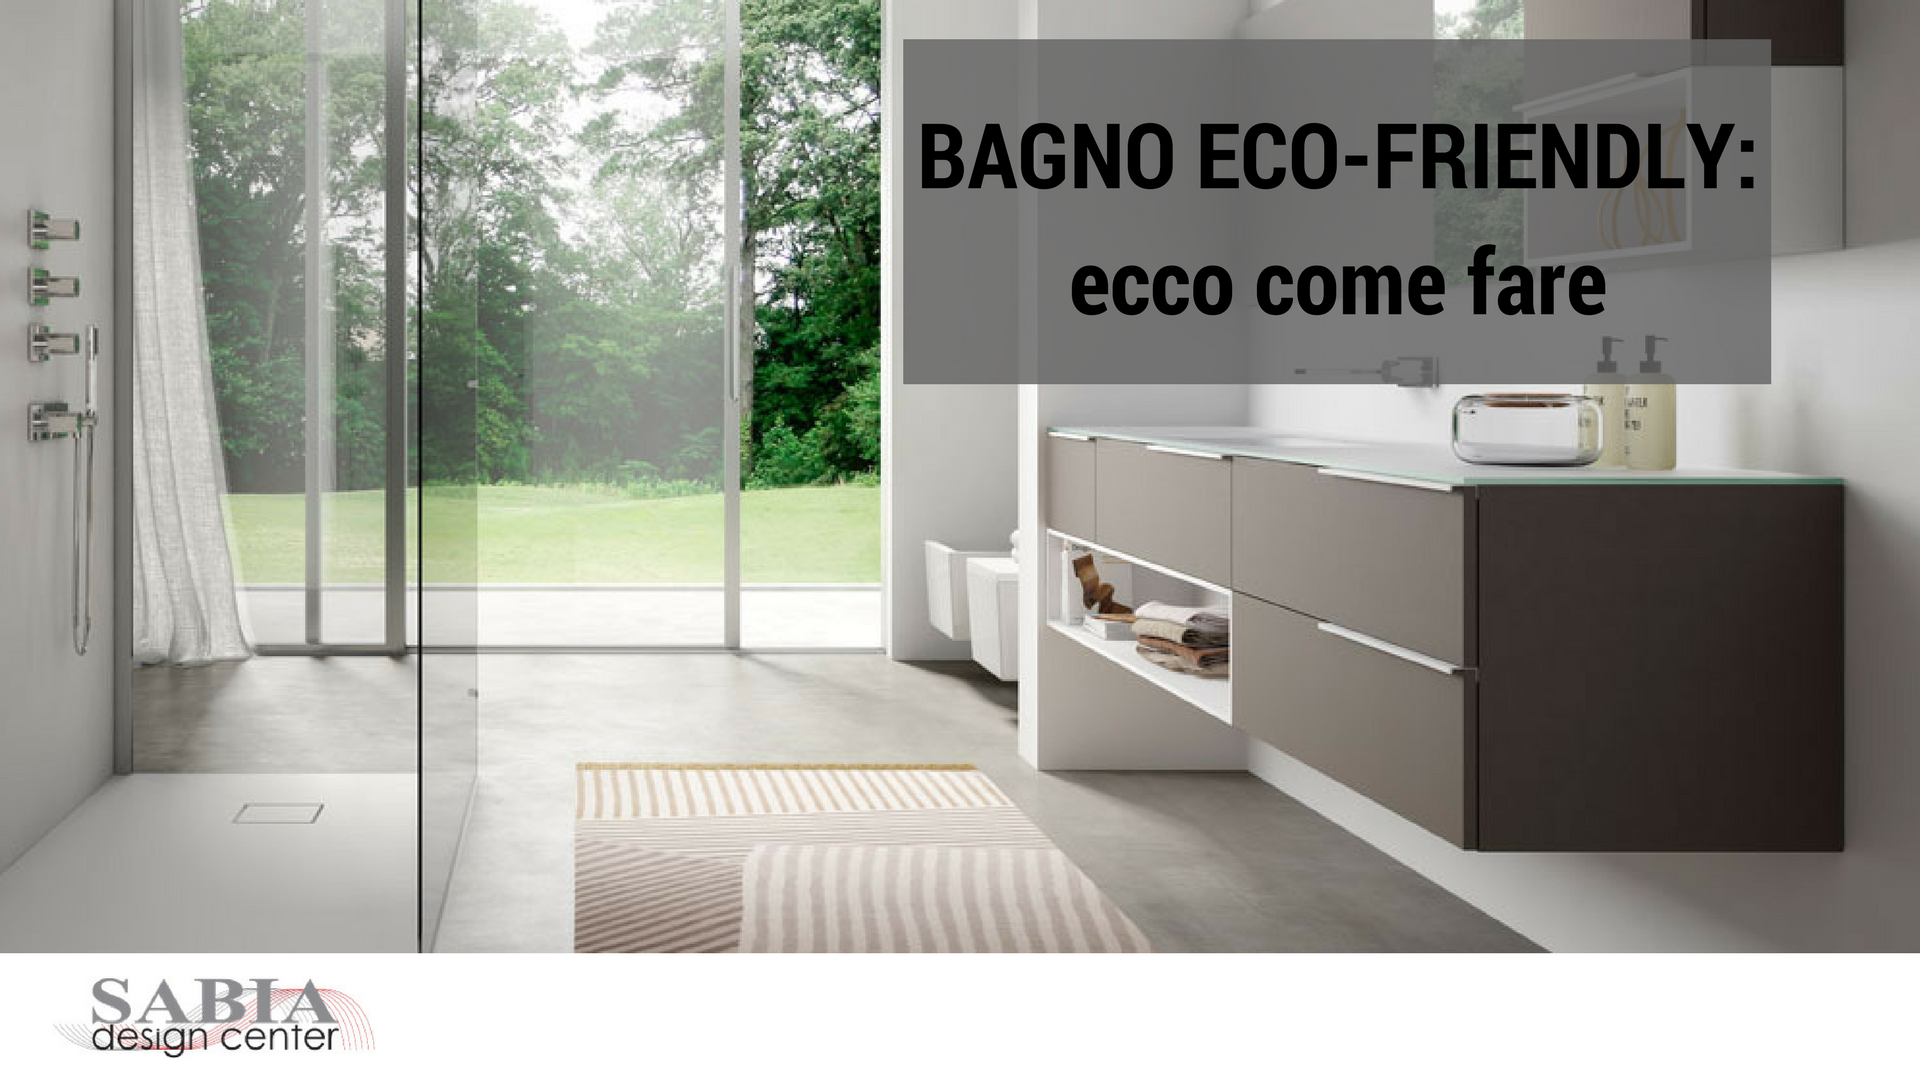 Arredo bagno eco friendly certo che si può sabia design center